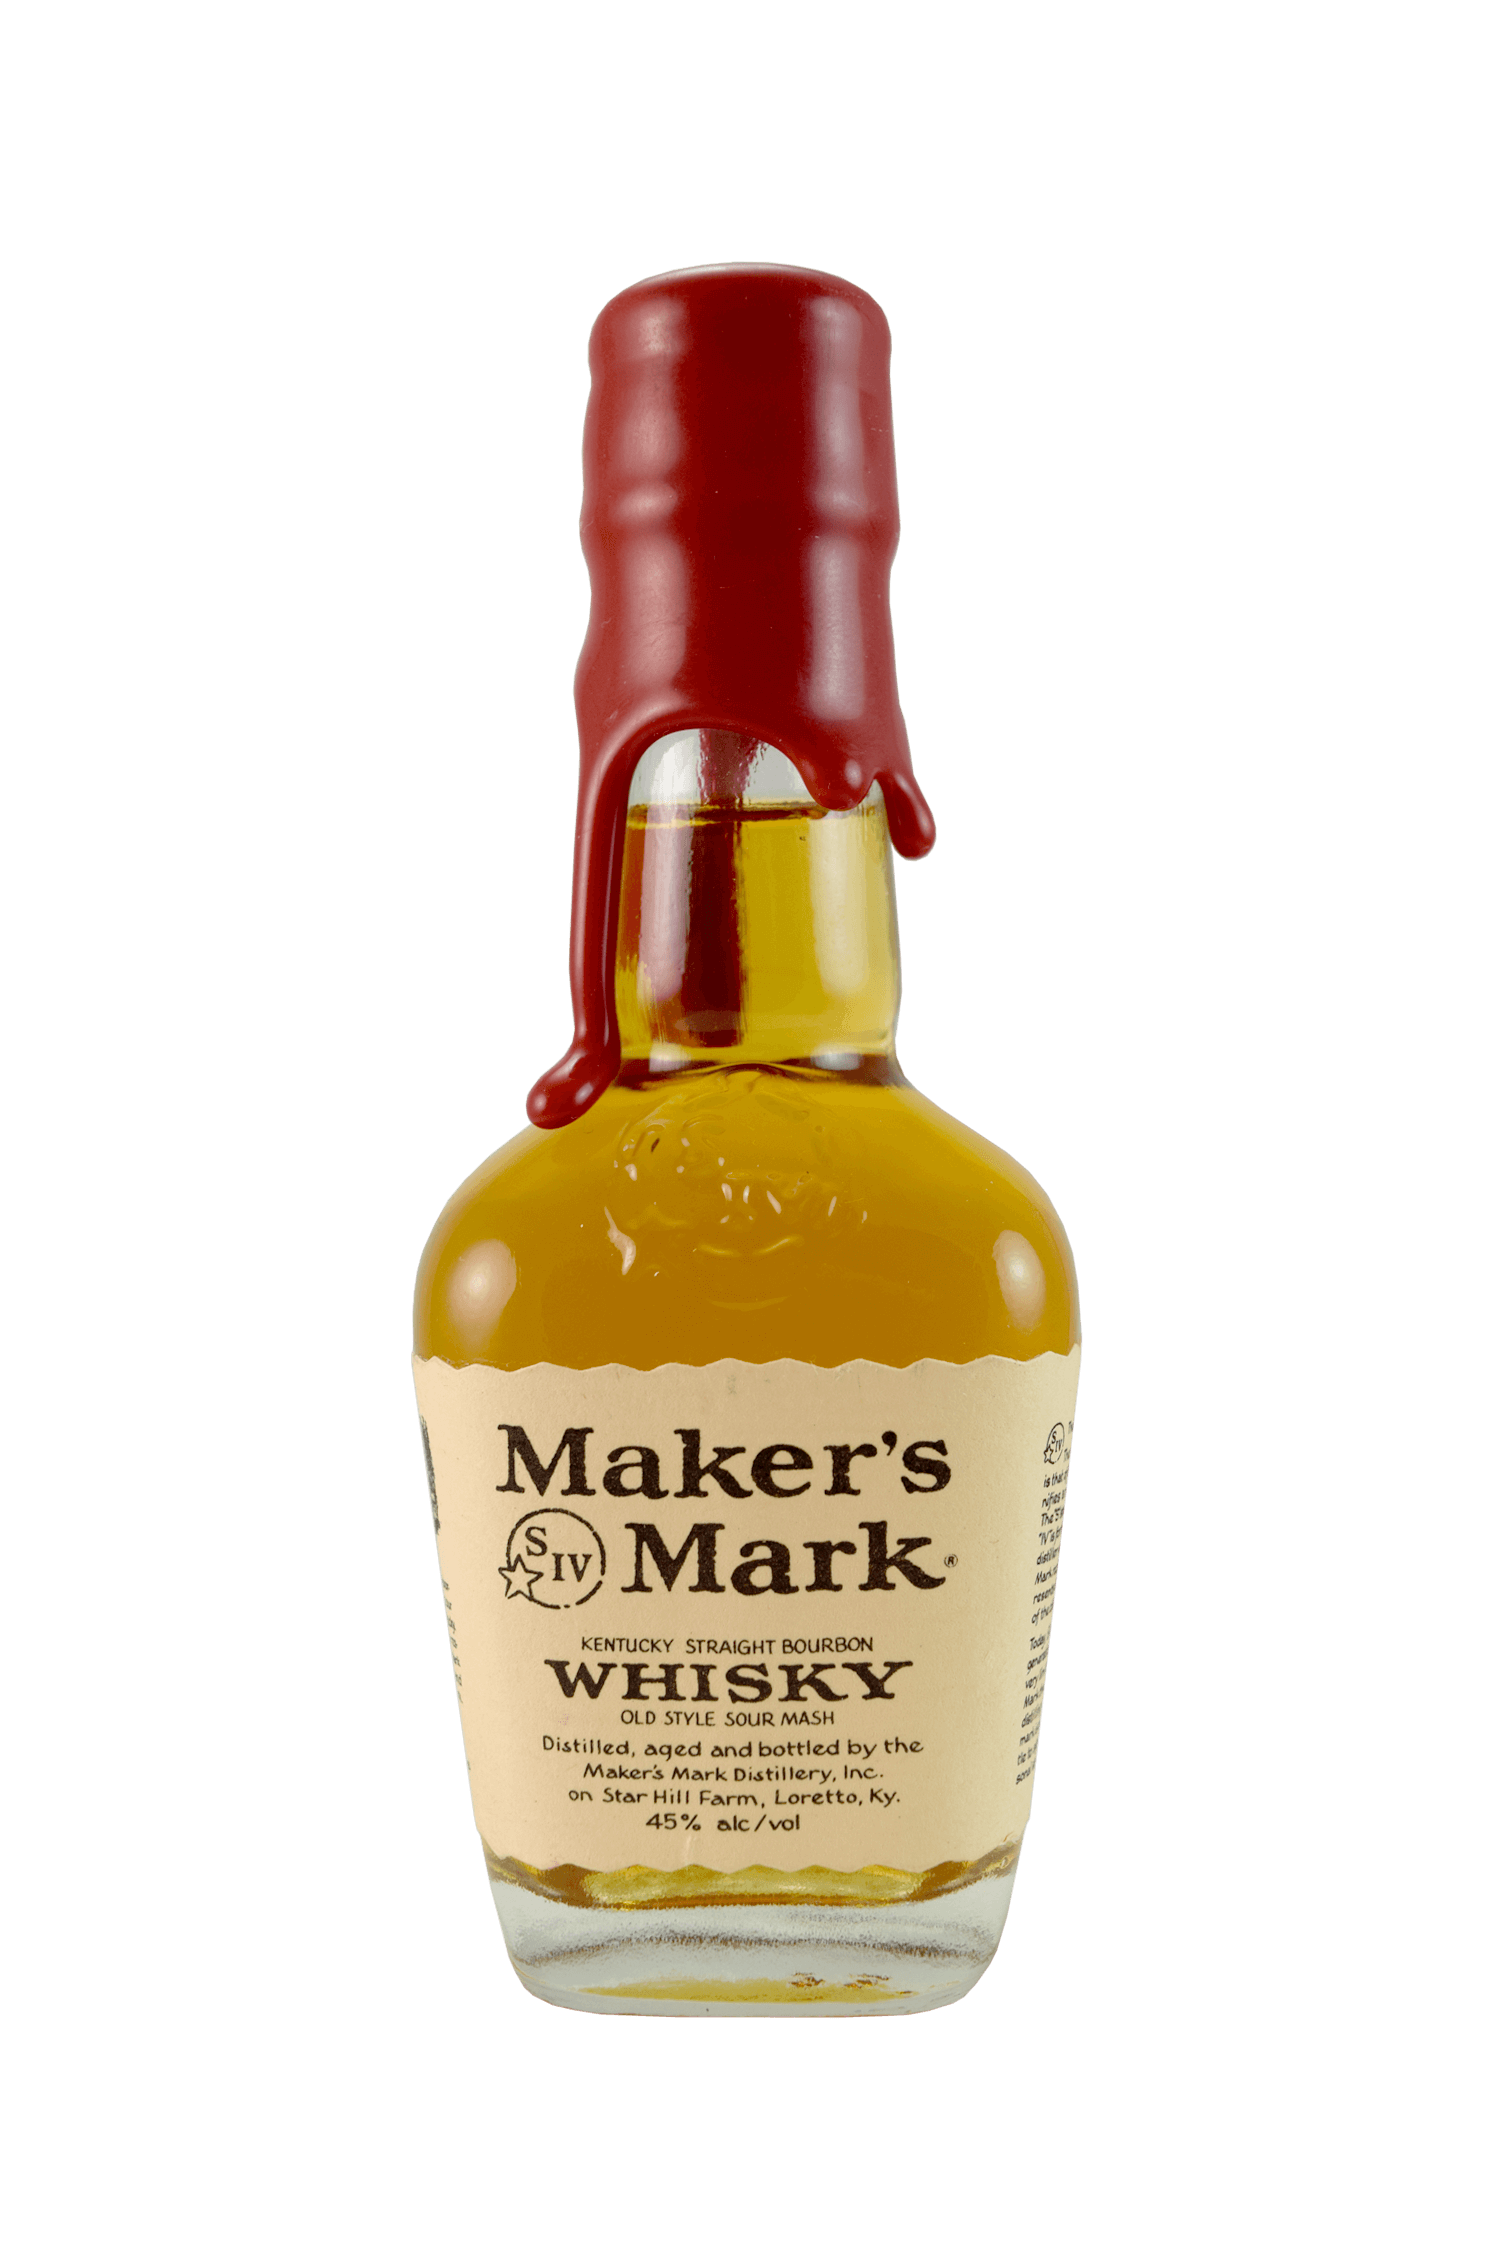 Maker's Mark Whisky